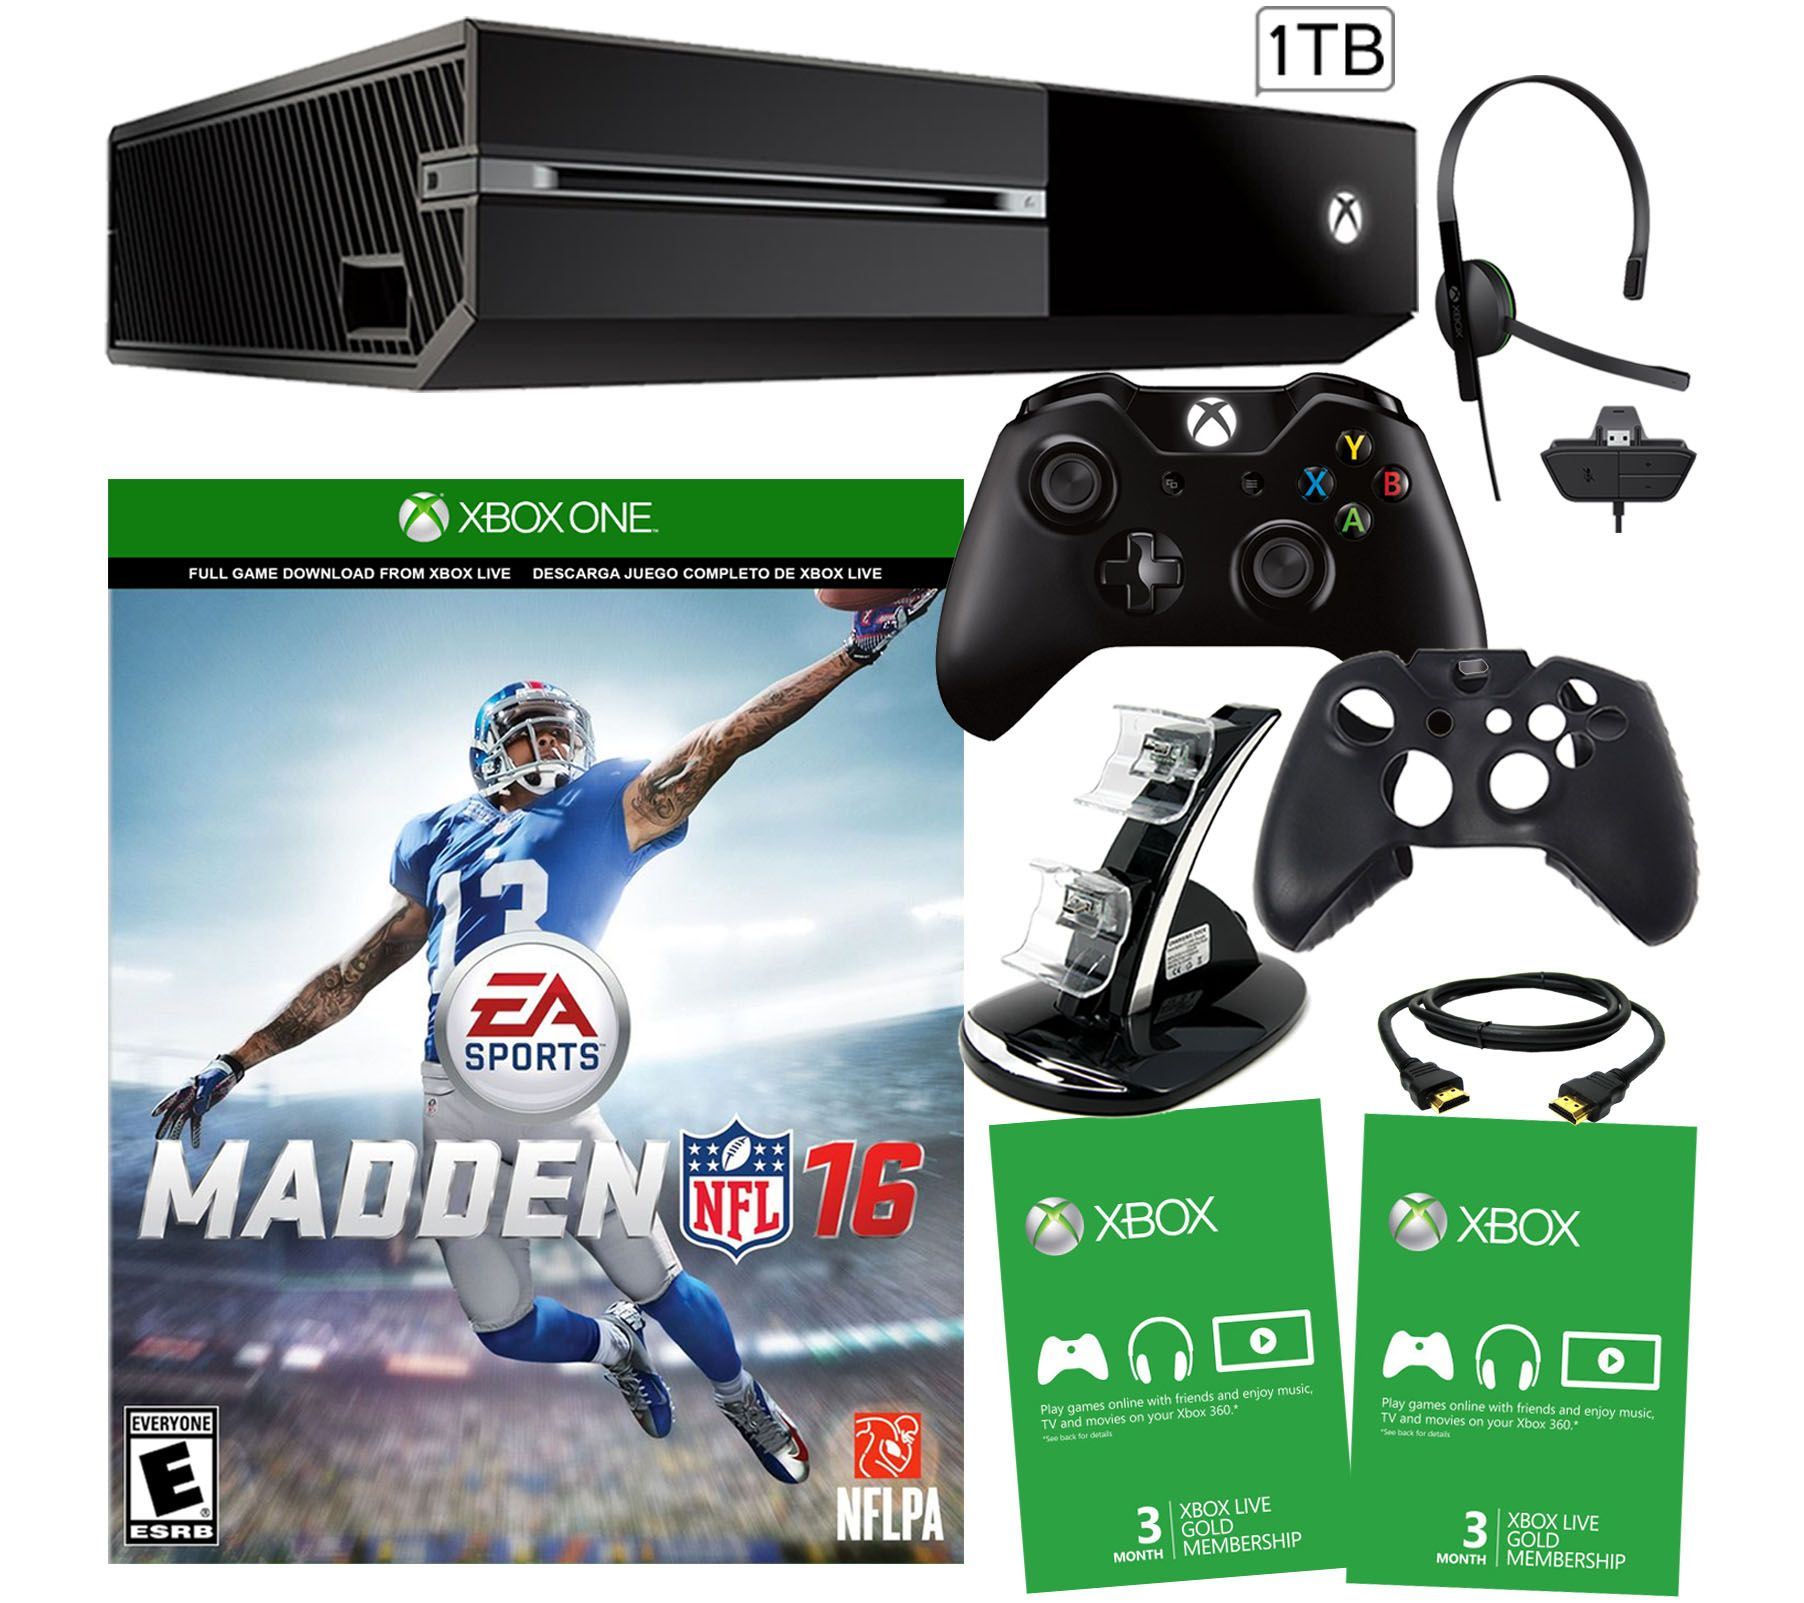 Xbox One 1TB Madden 16 Bundle with 6 Month Xbox Live Card - E228596